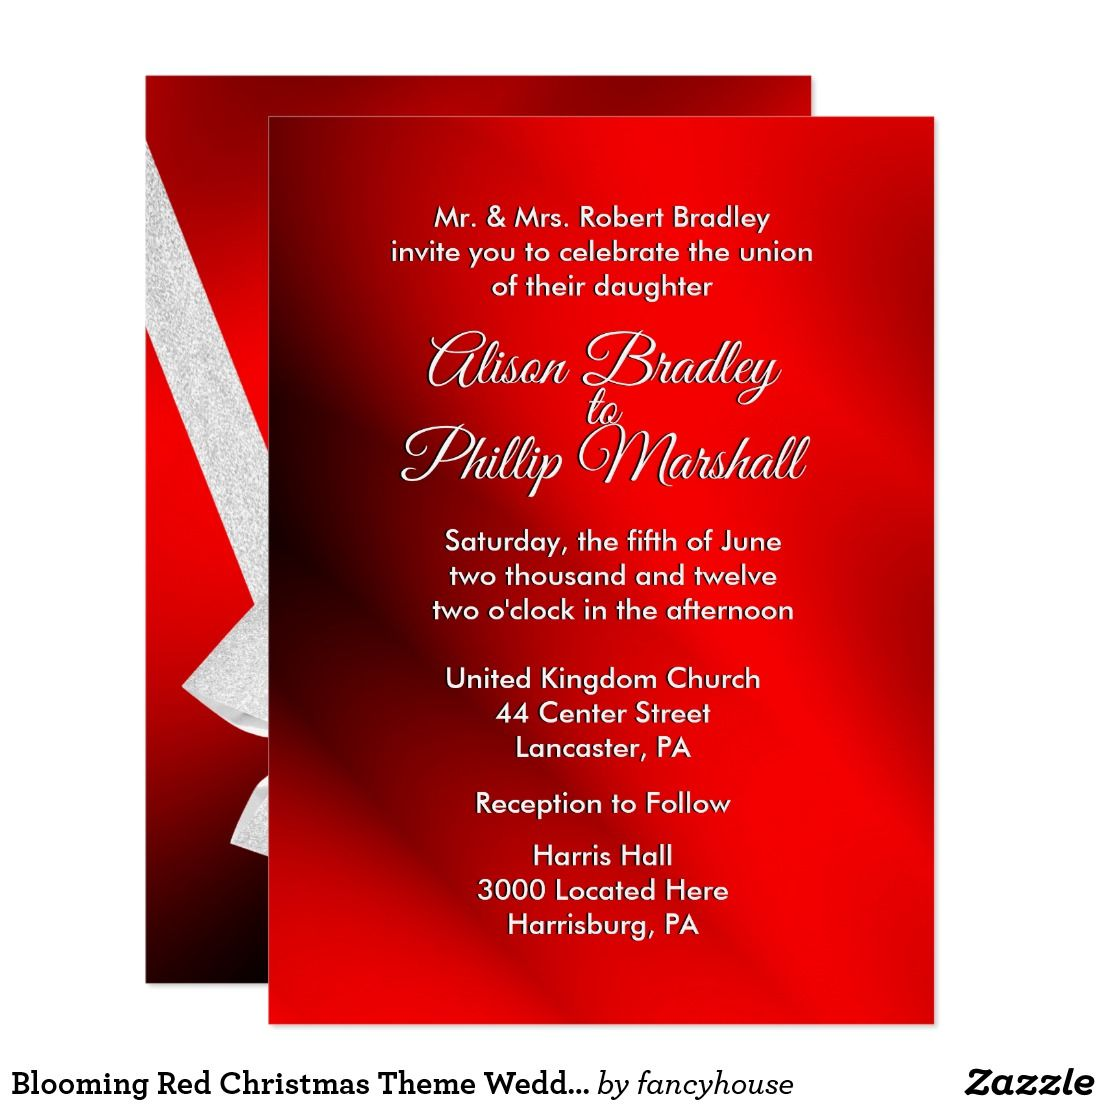 Blooming Red Christmas Theme Wedding Invitation 50% off | Wedding ...